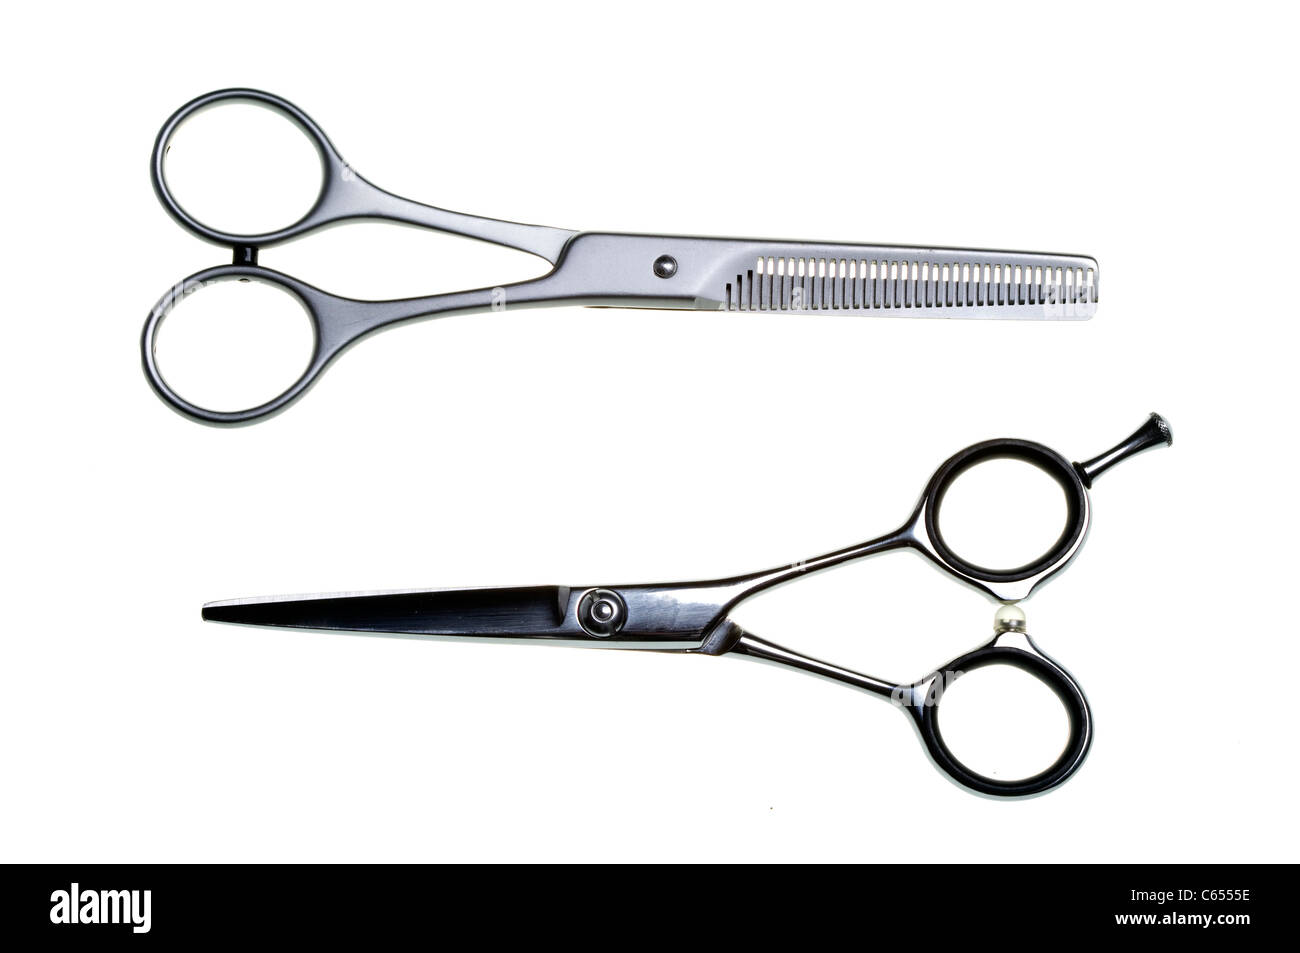 Special scissors for work of hairdresser - Stock Image